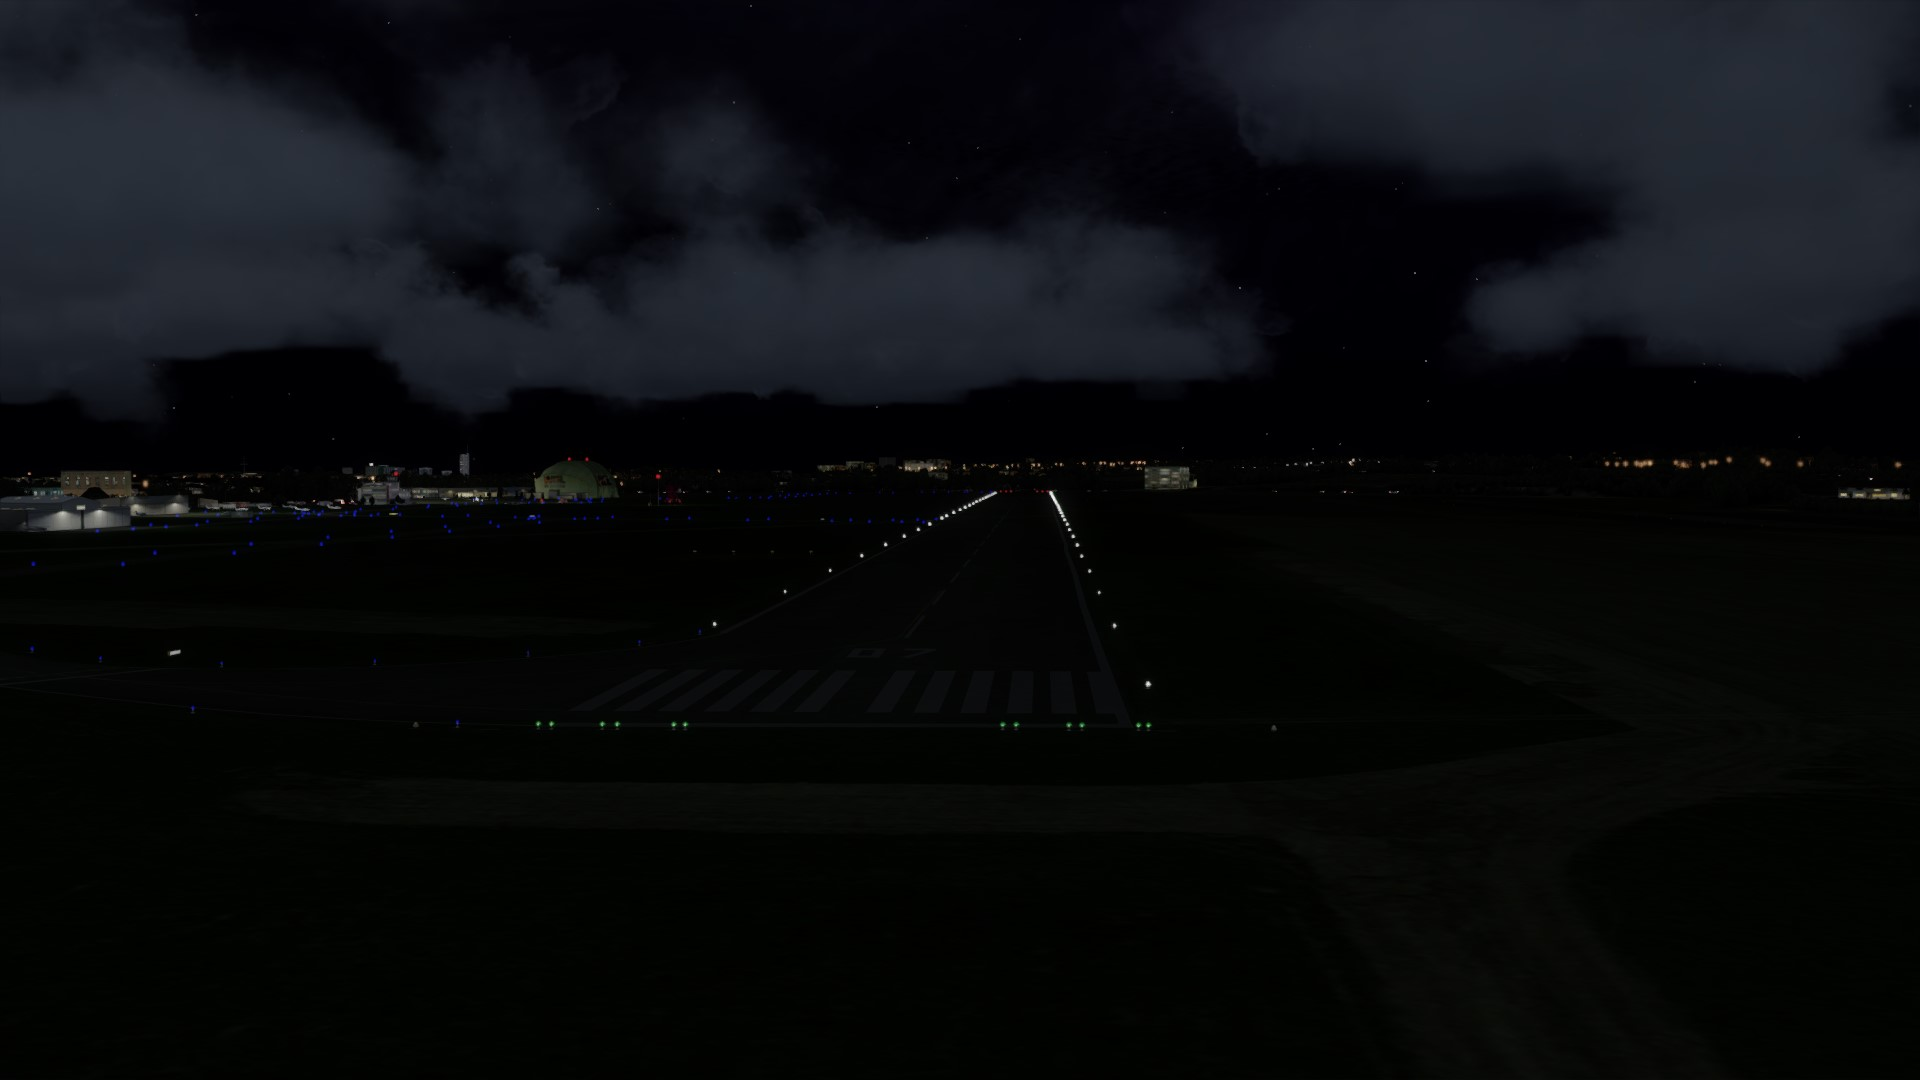 p3dv4_3d_lights_green_lights.jpg